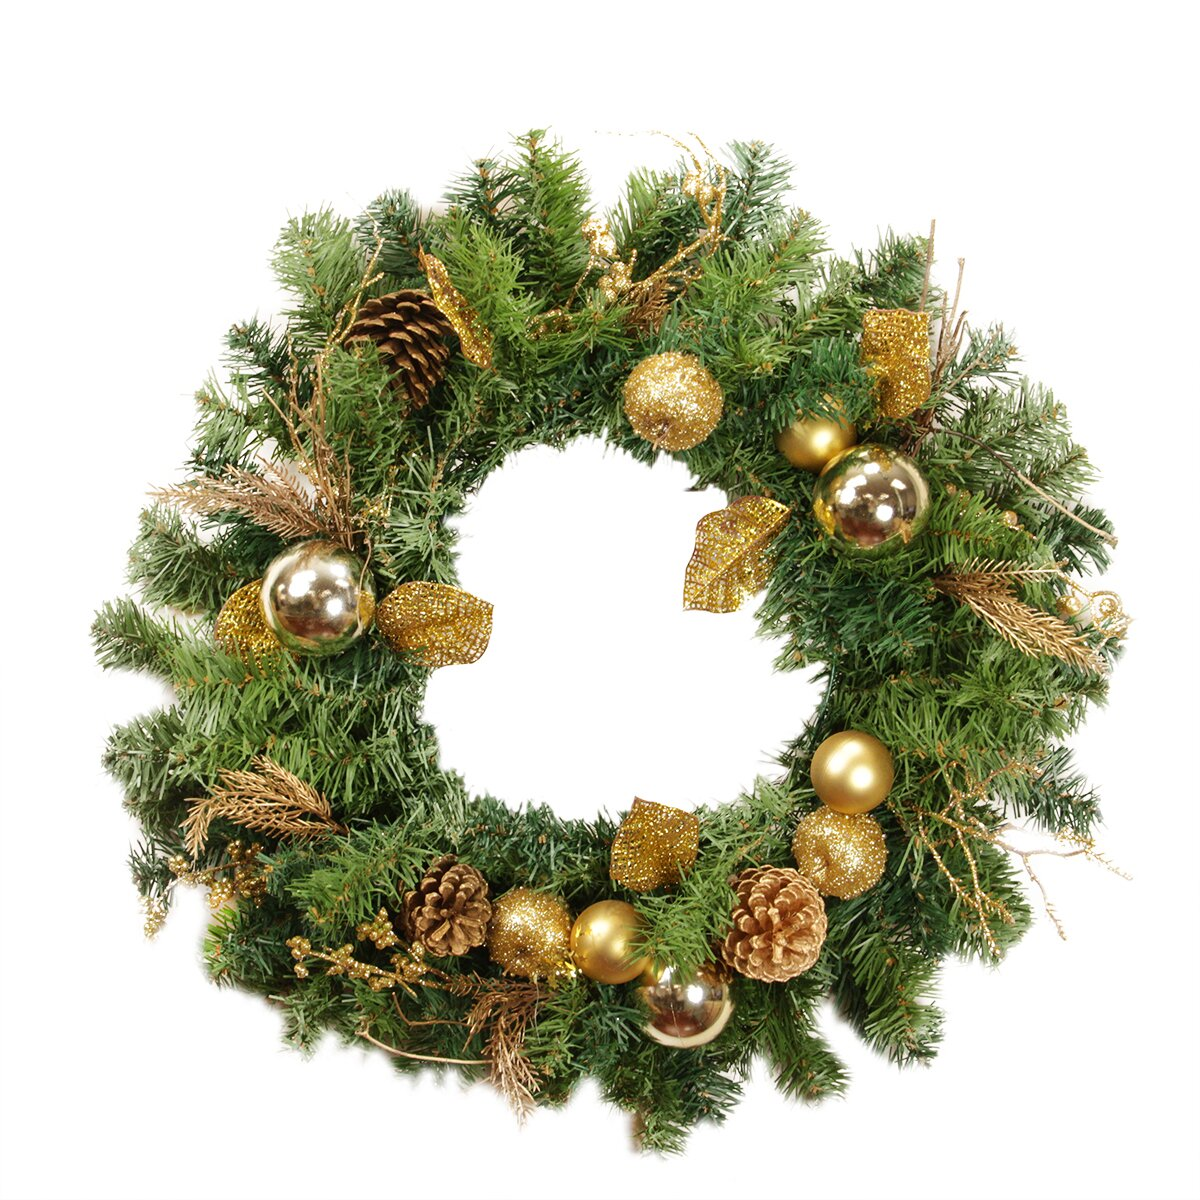 Christmas wreath ornaments - 24 Artificial Pine Cone Apple And Ball Ornament Christmas Wreath